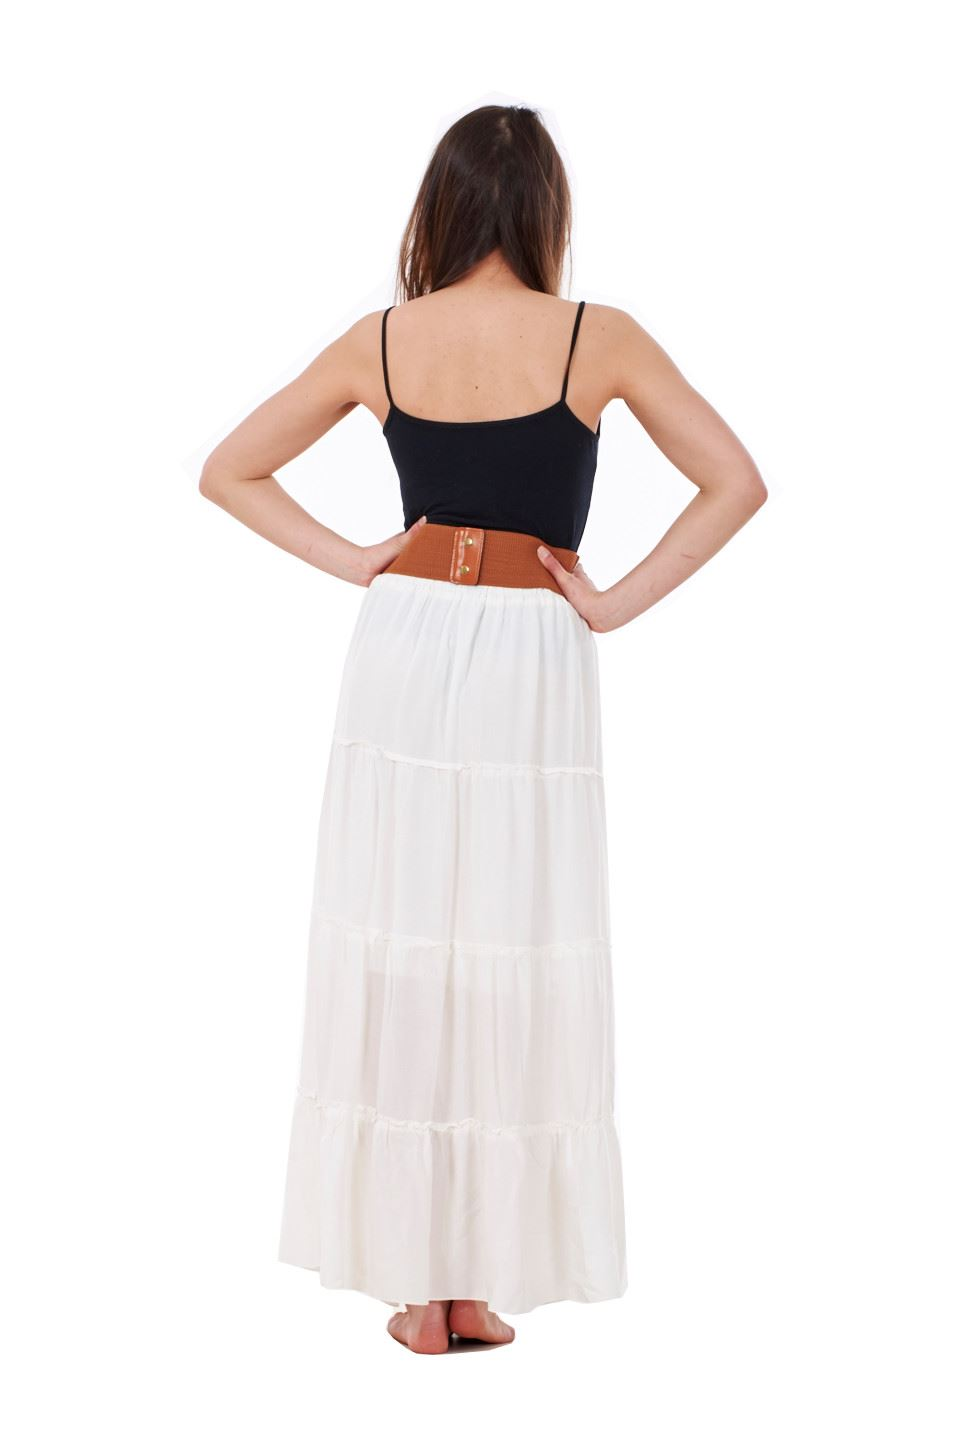 thumbnail 4 - New Ladies Skirt Elasticated Long Maxi High Waist Belted Casual Wear 8 to 14